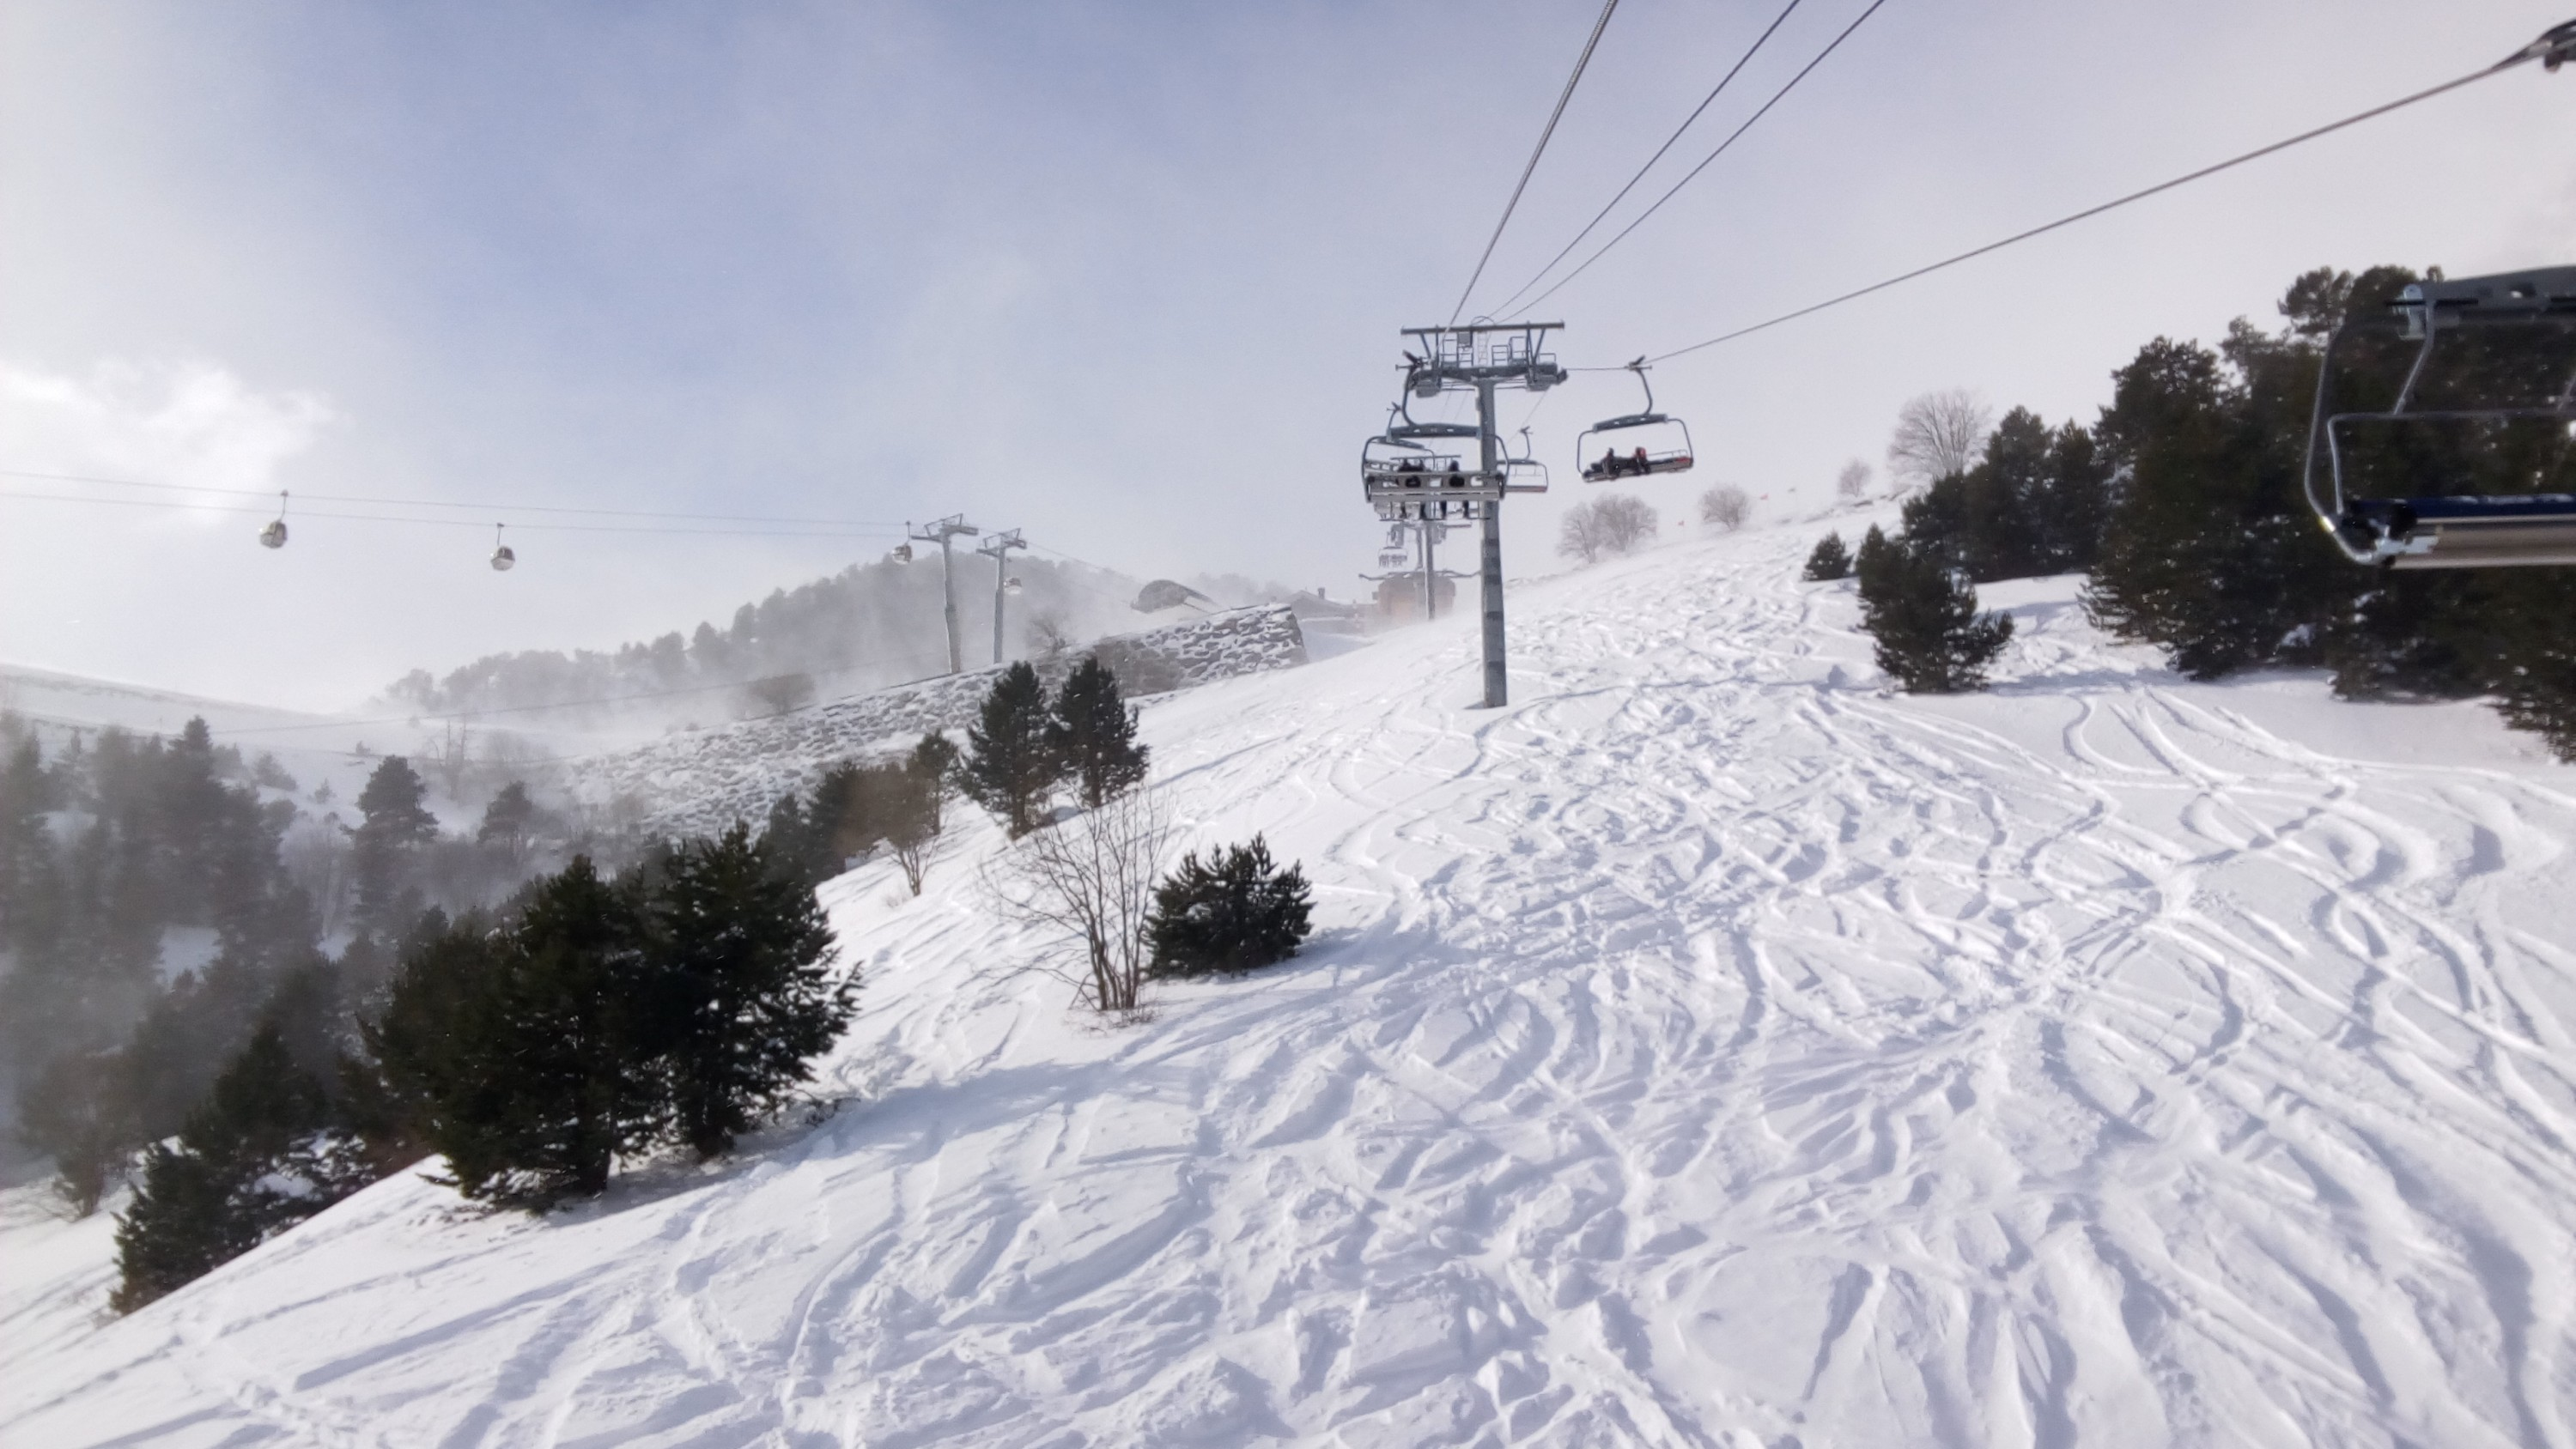 Heading Up On Josep Serra Chairlift - Gallery